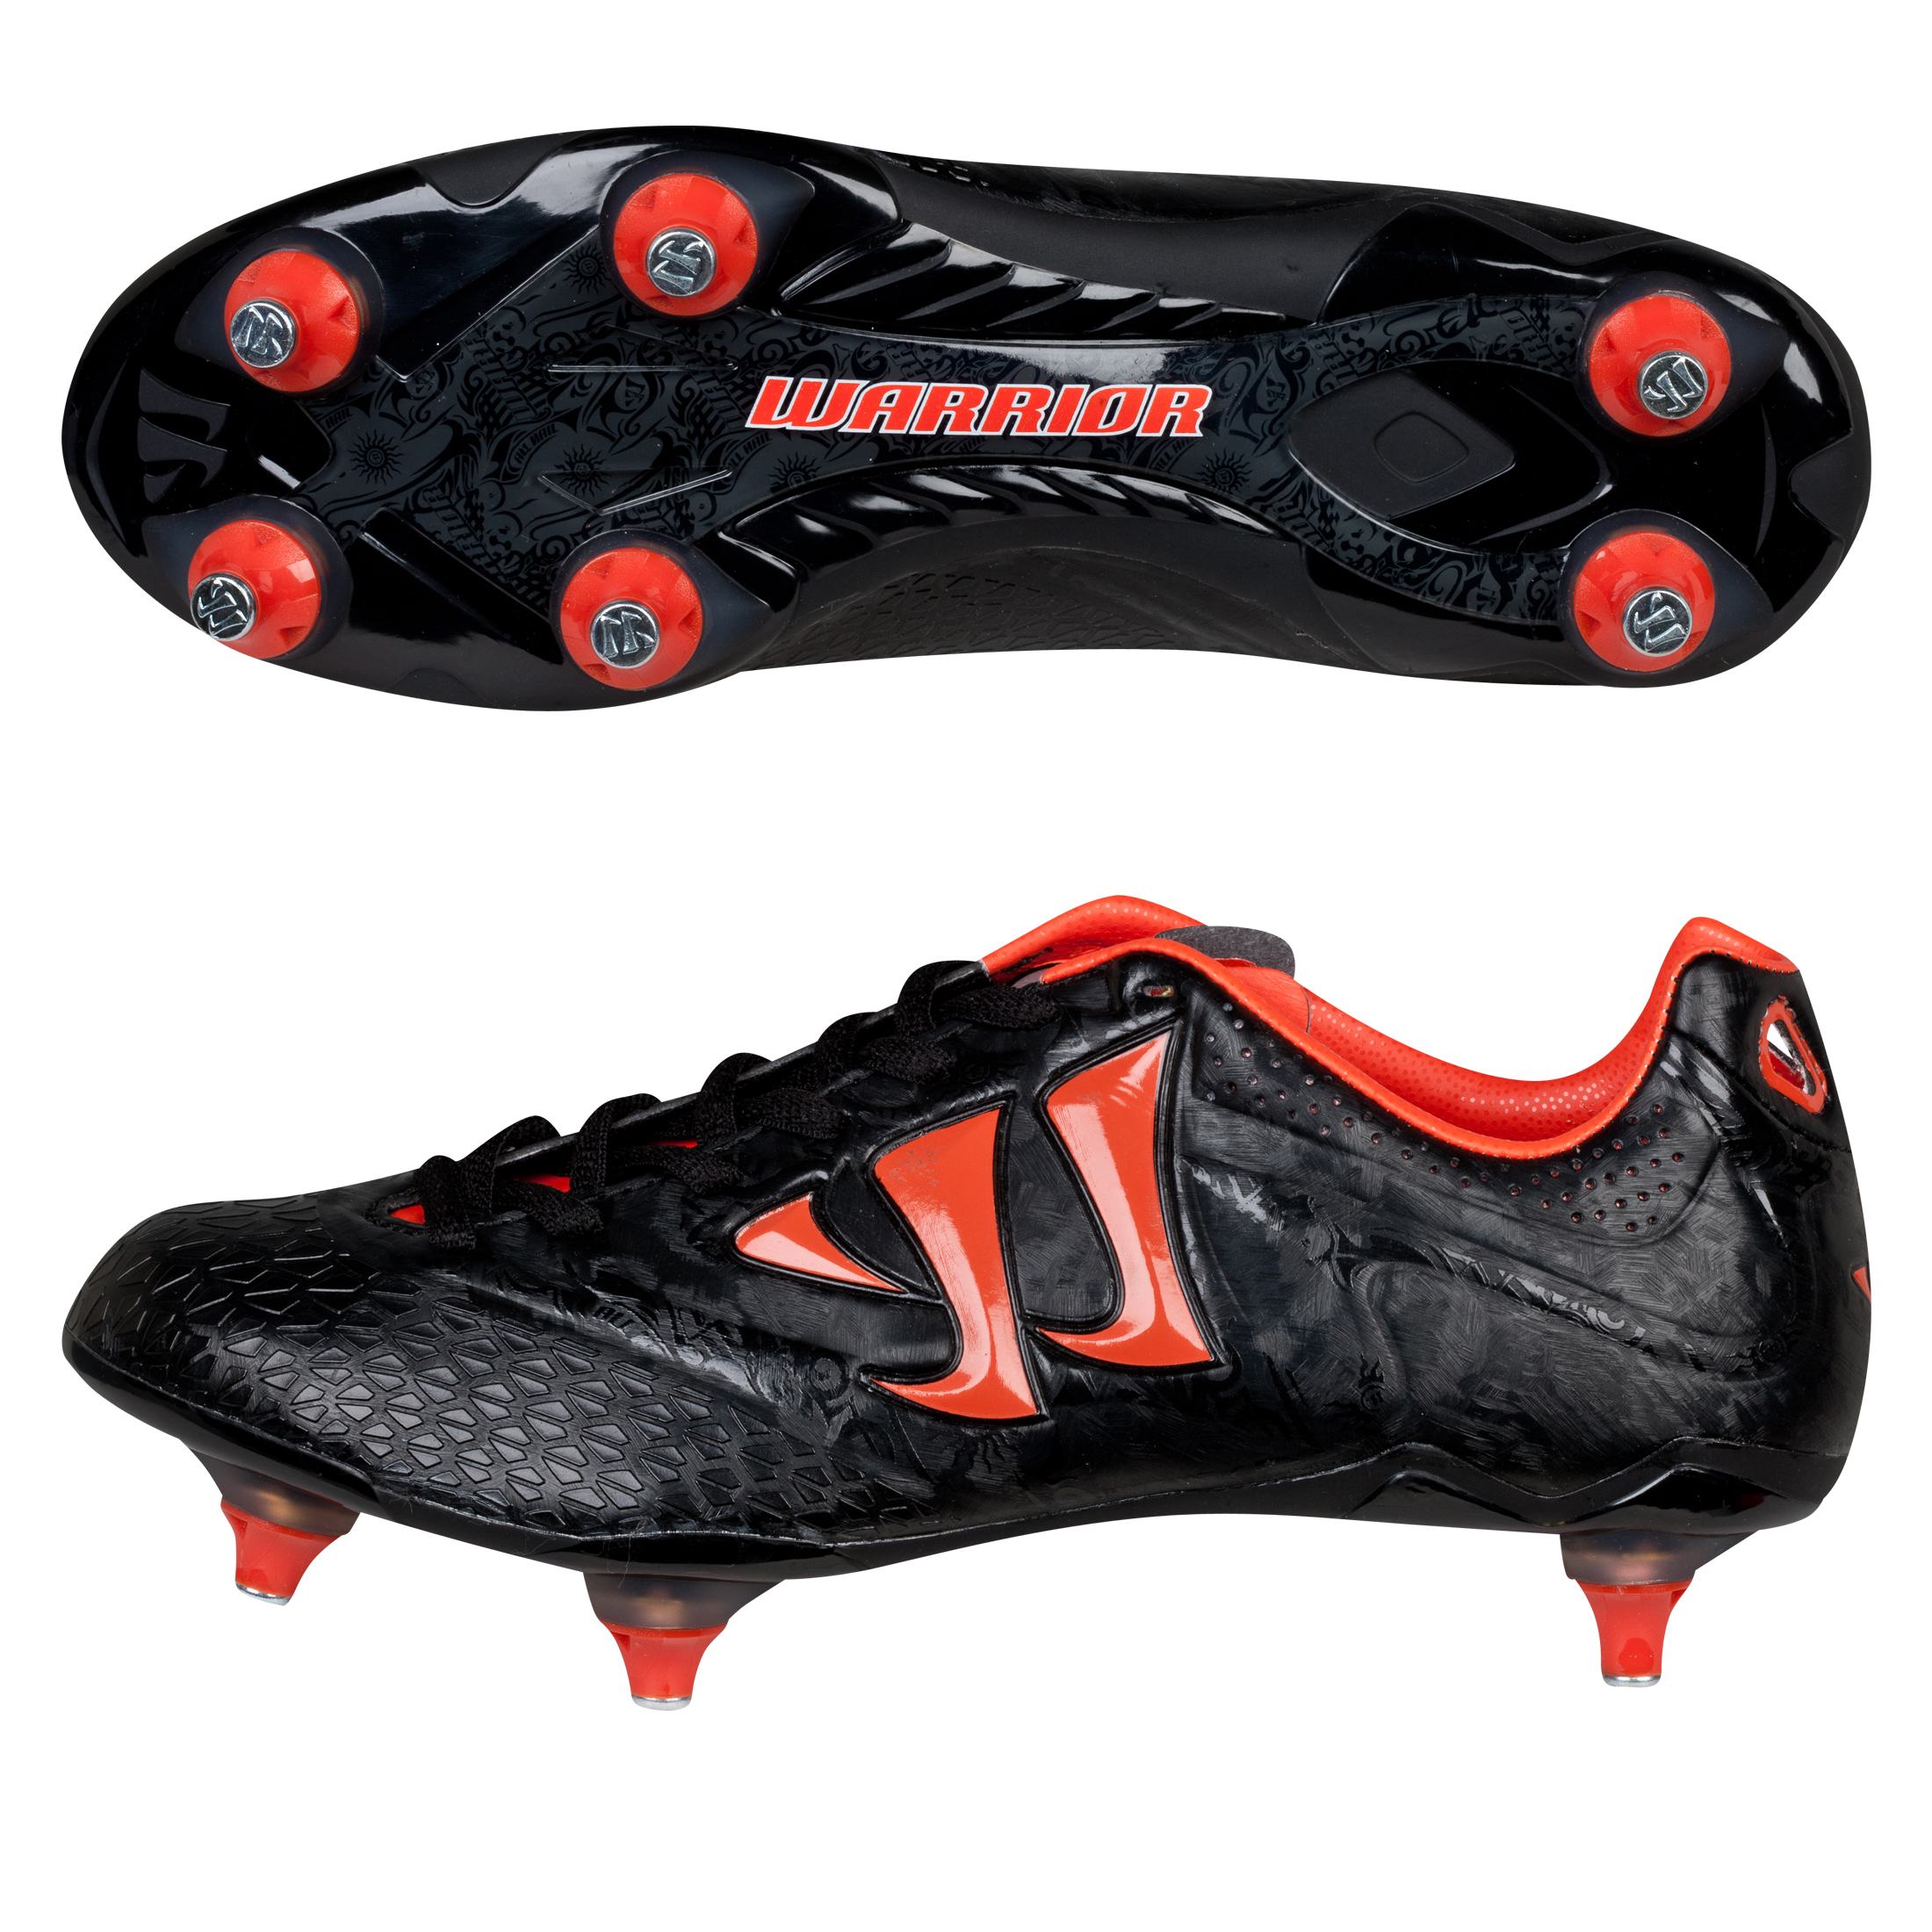 Warrior Sports Skreamer Combat Soft Ground Football Boots - Black/Spicy Orange